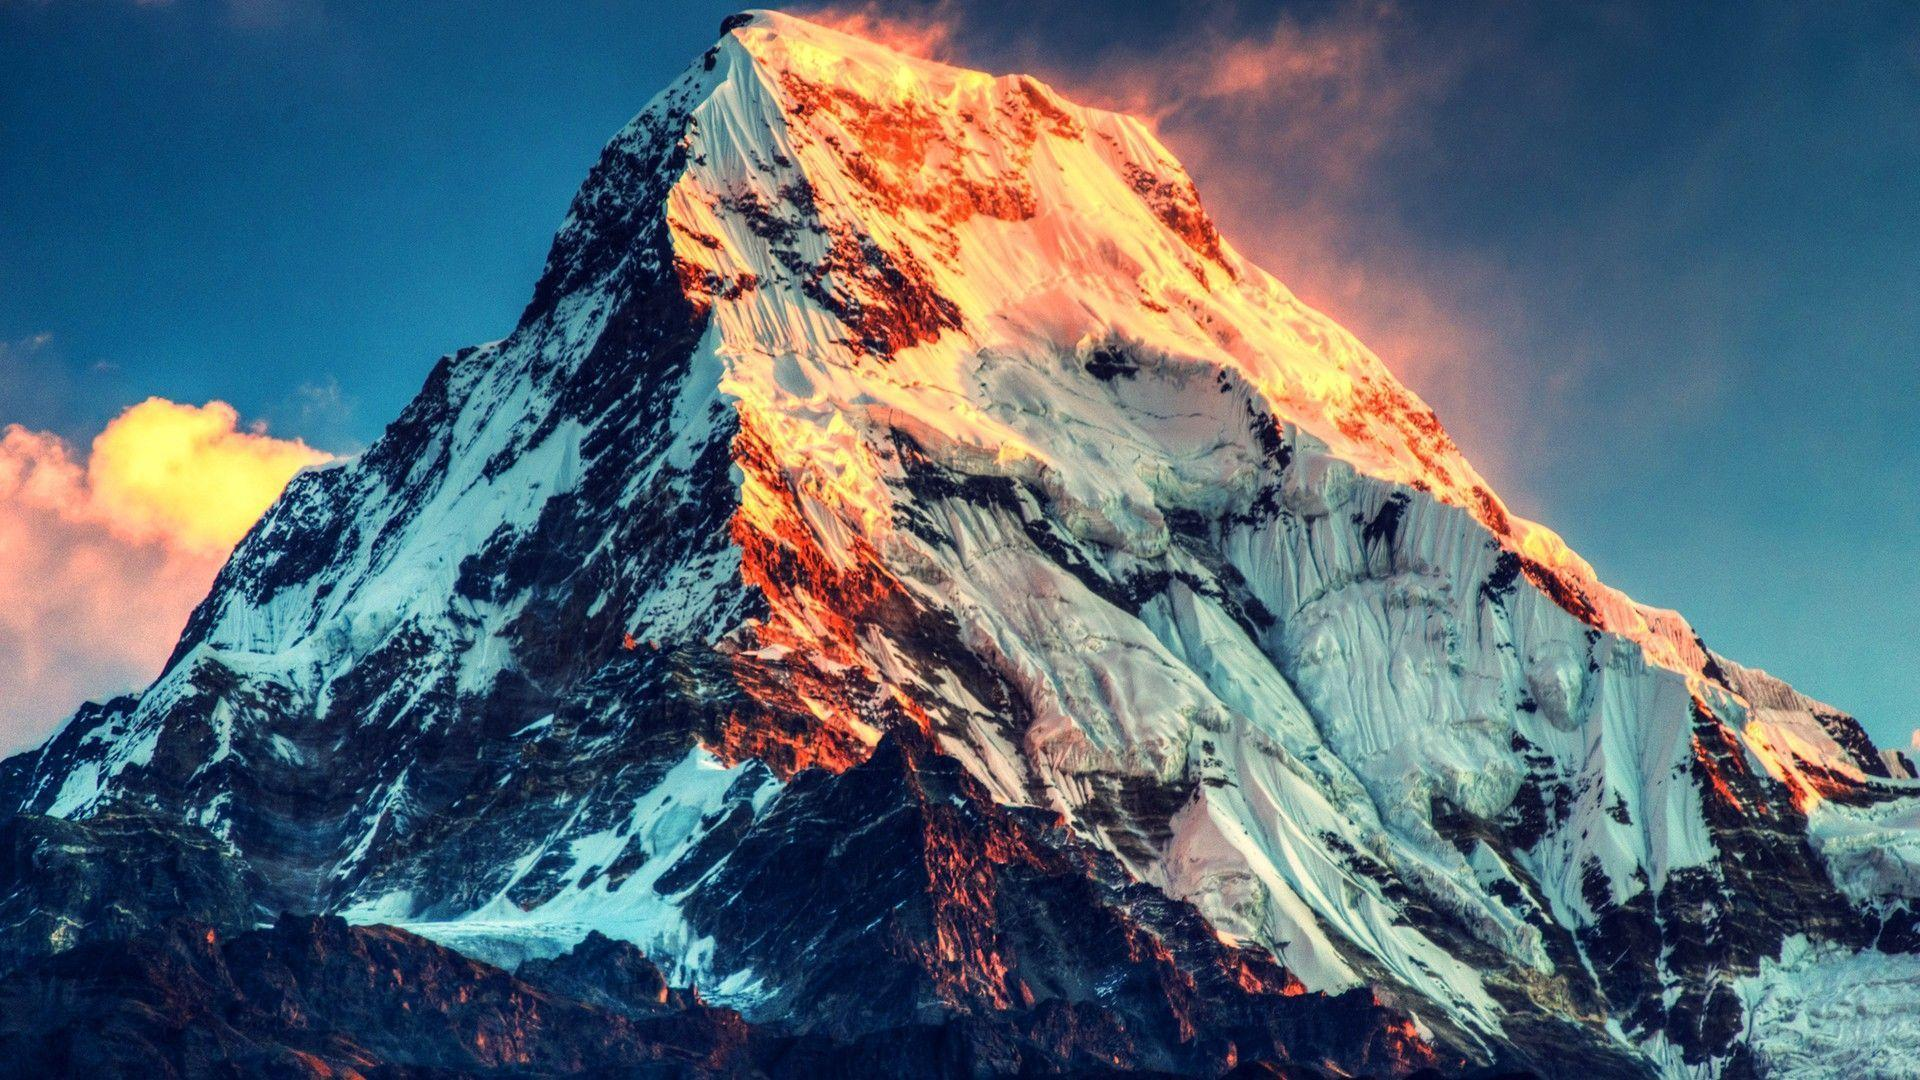 Burning Sunlight Mount Everest HD Wallpapers » FullHDWpp